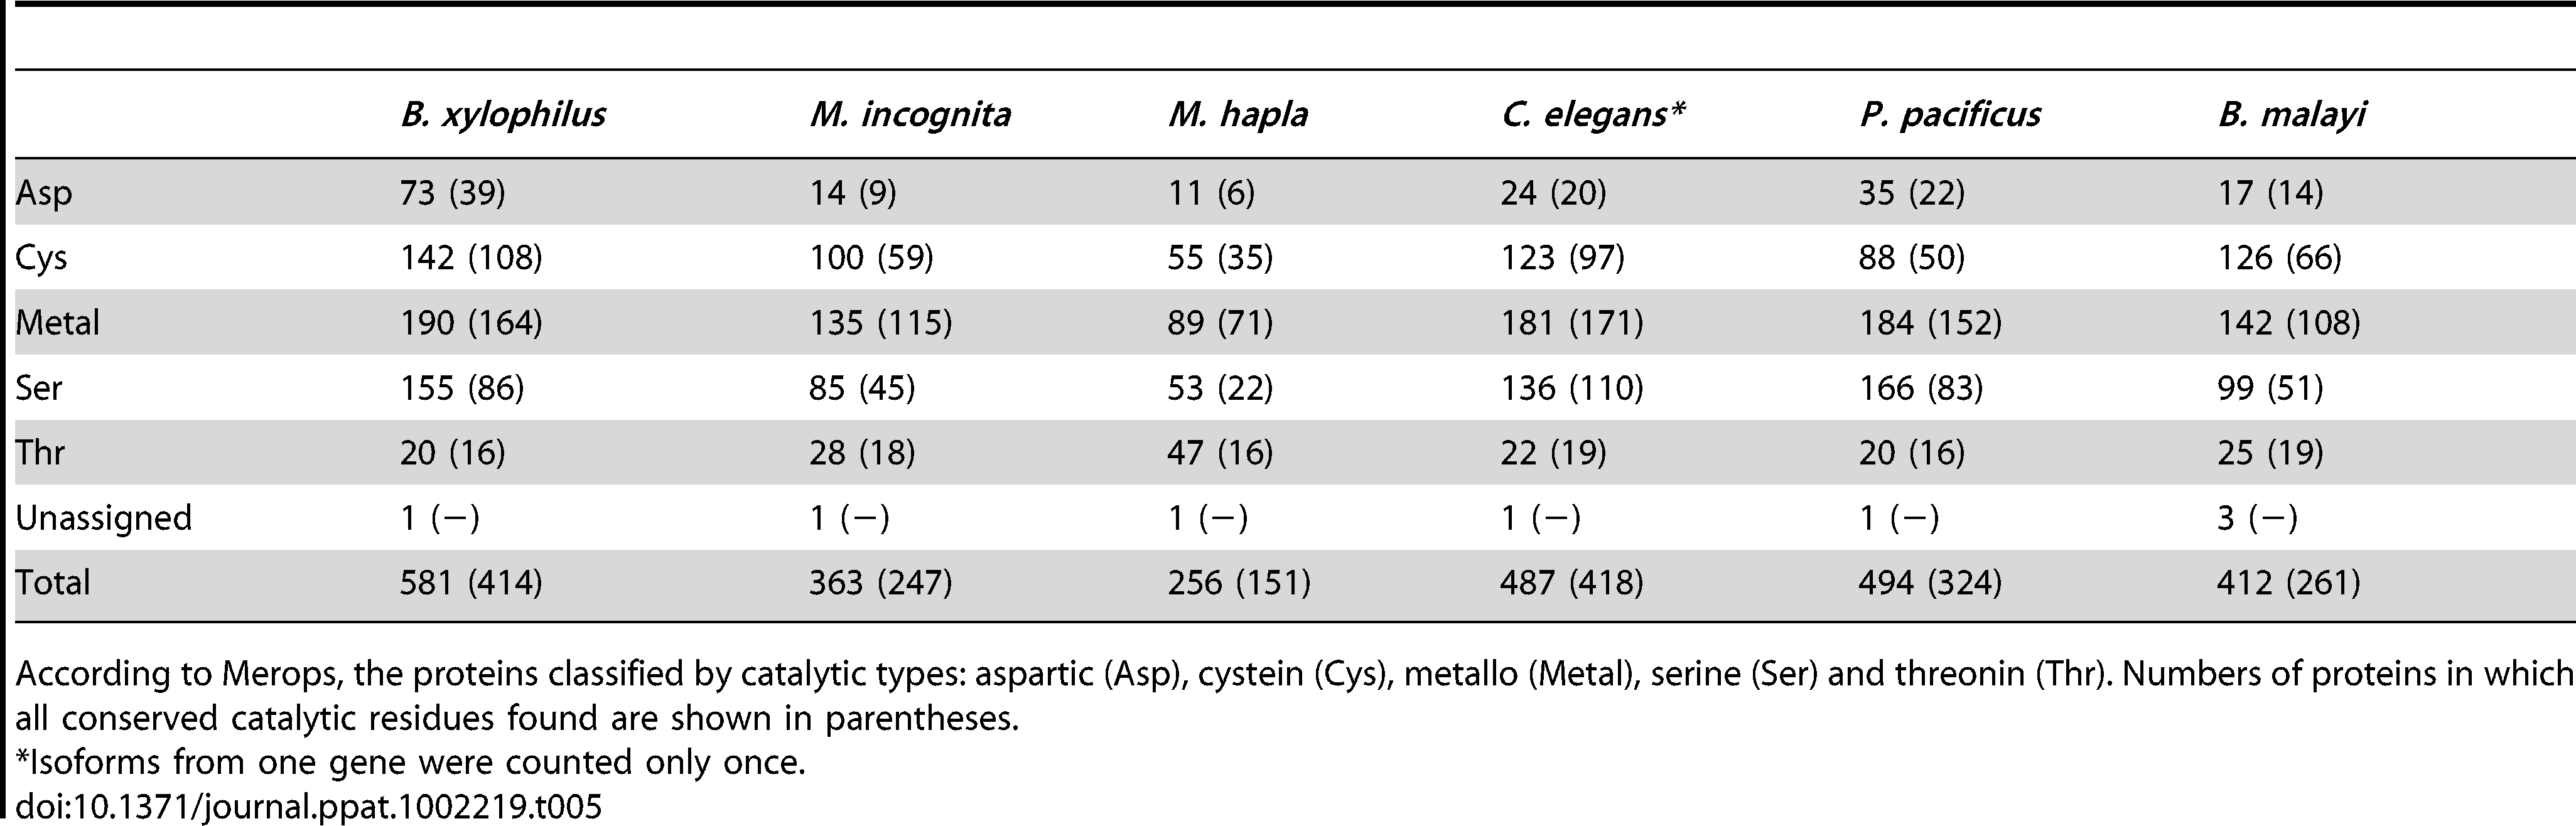 Summary of peptidases in <i>B. xylophilus</i> and other nematodes.